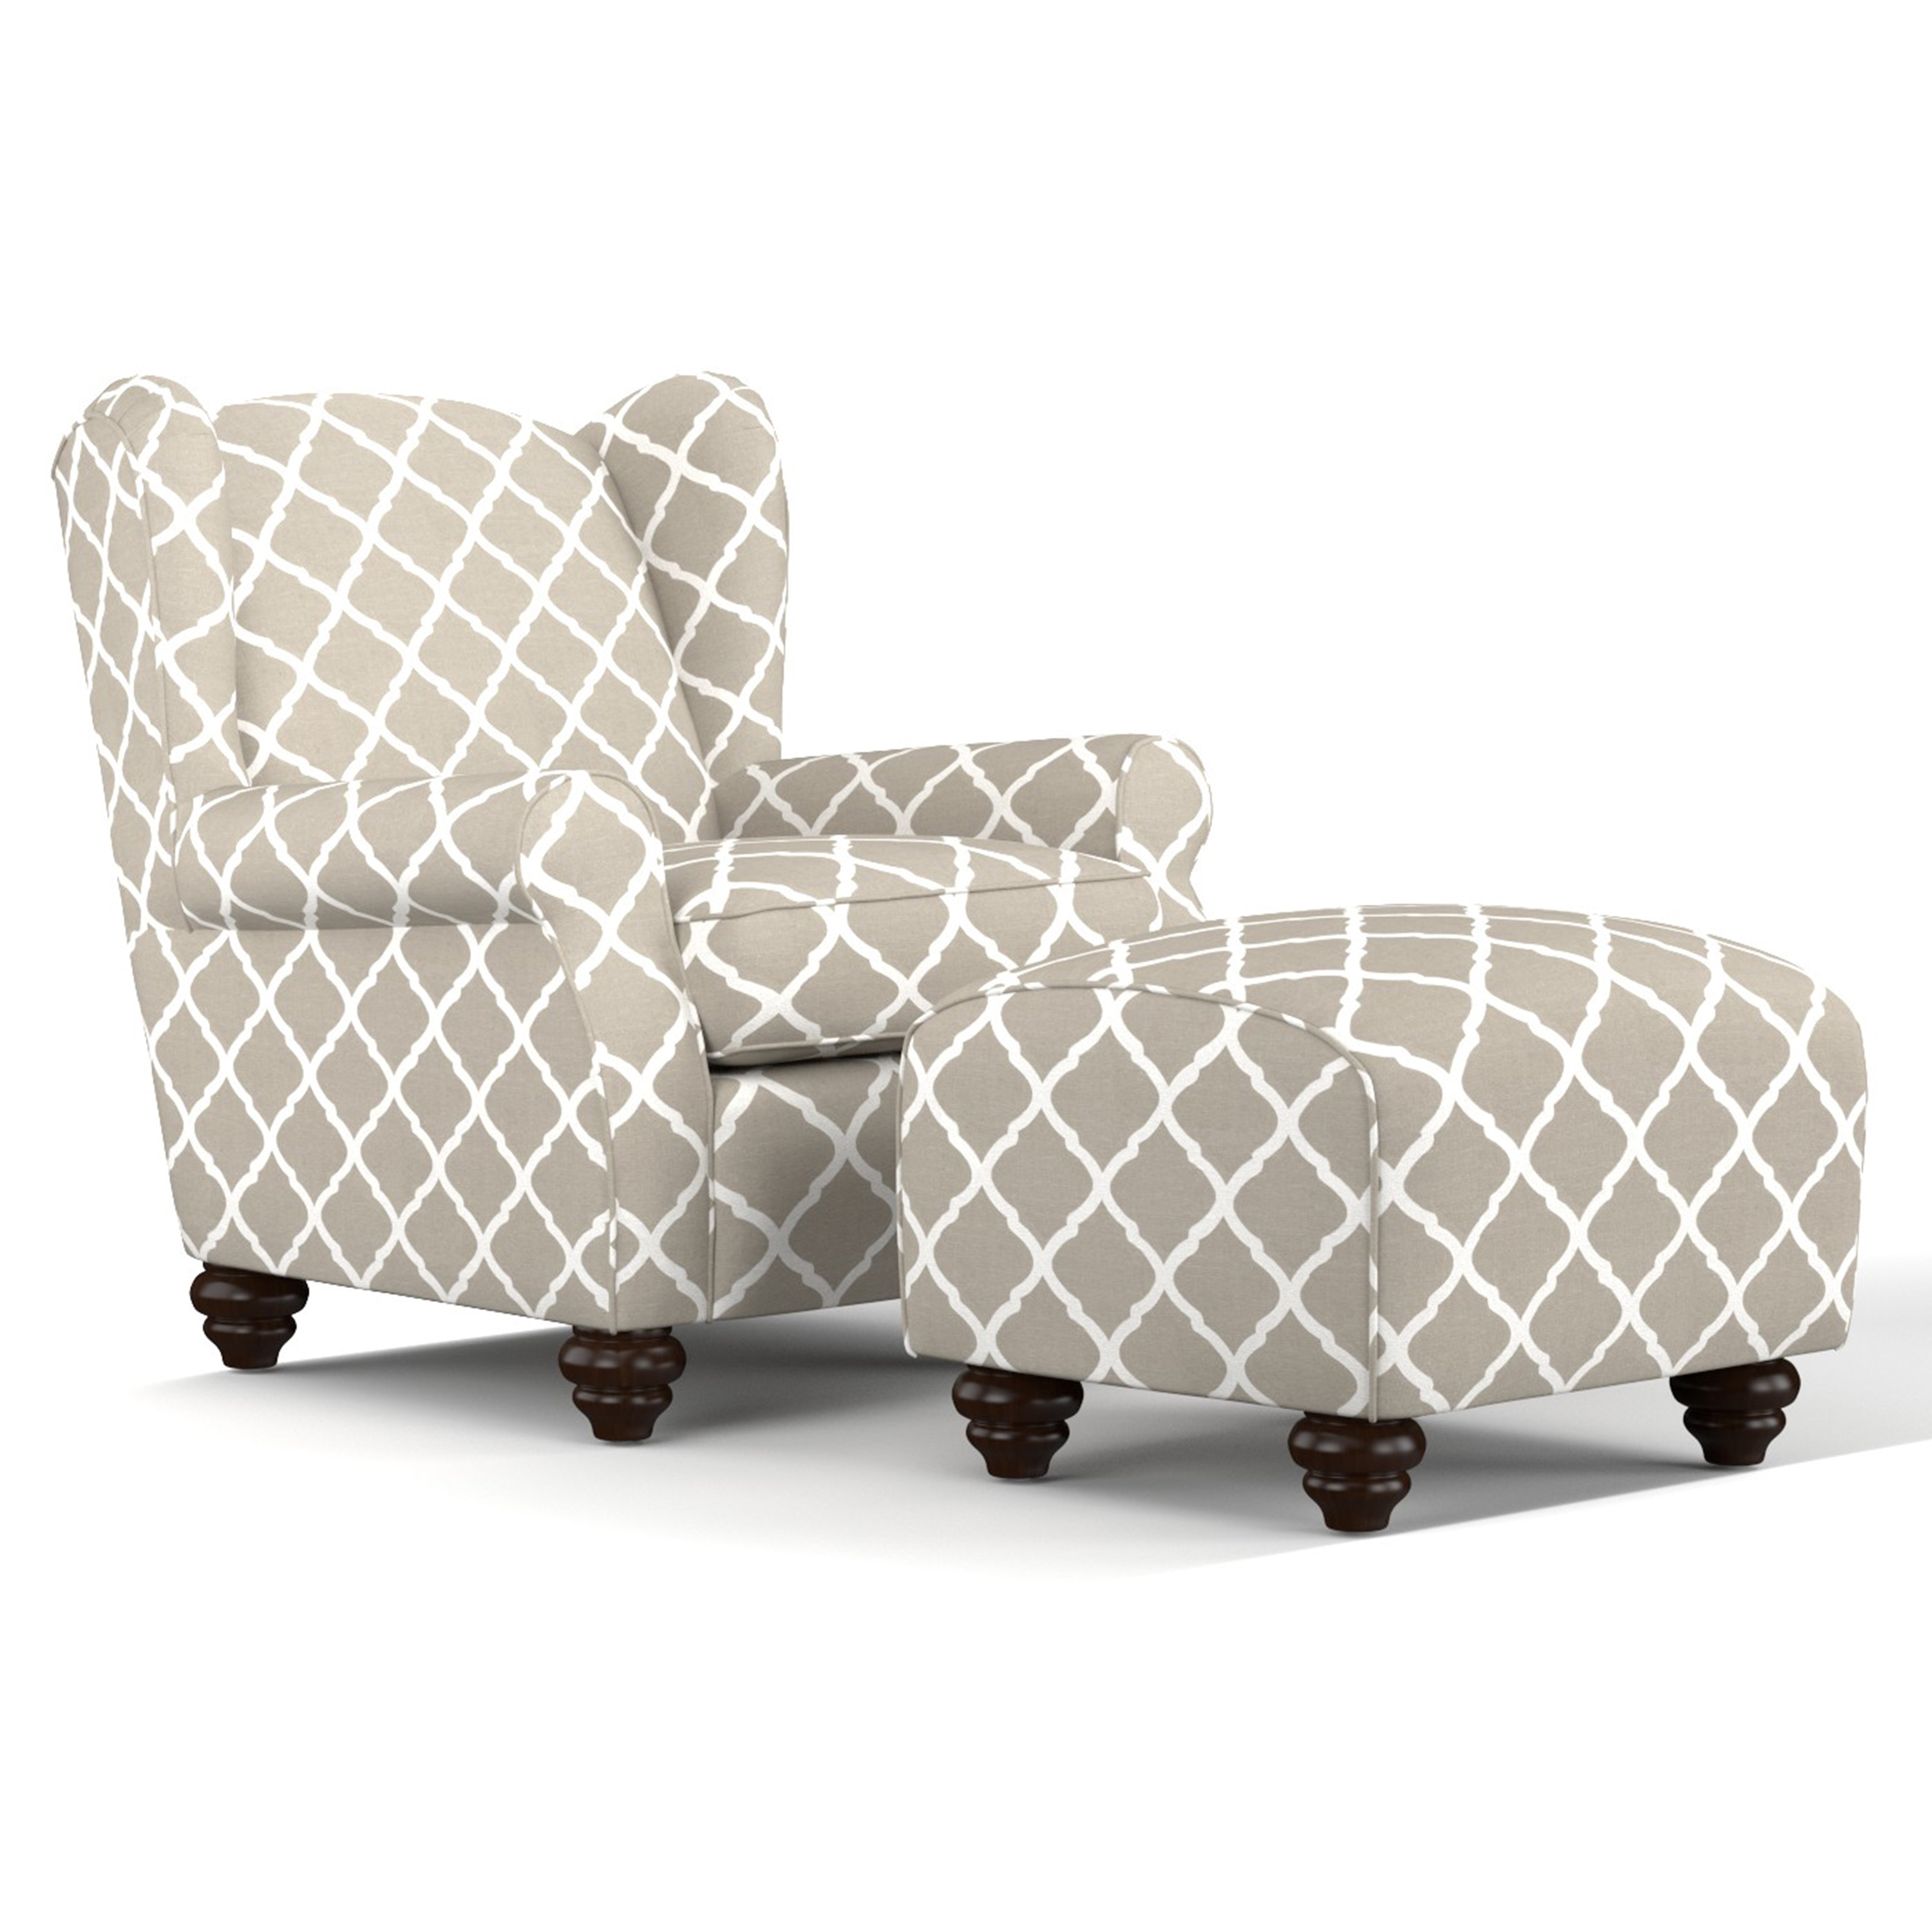 portfolio chair and ottoman lift chairs walmart buy living room online at overstock our best